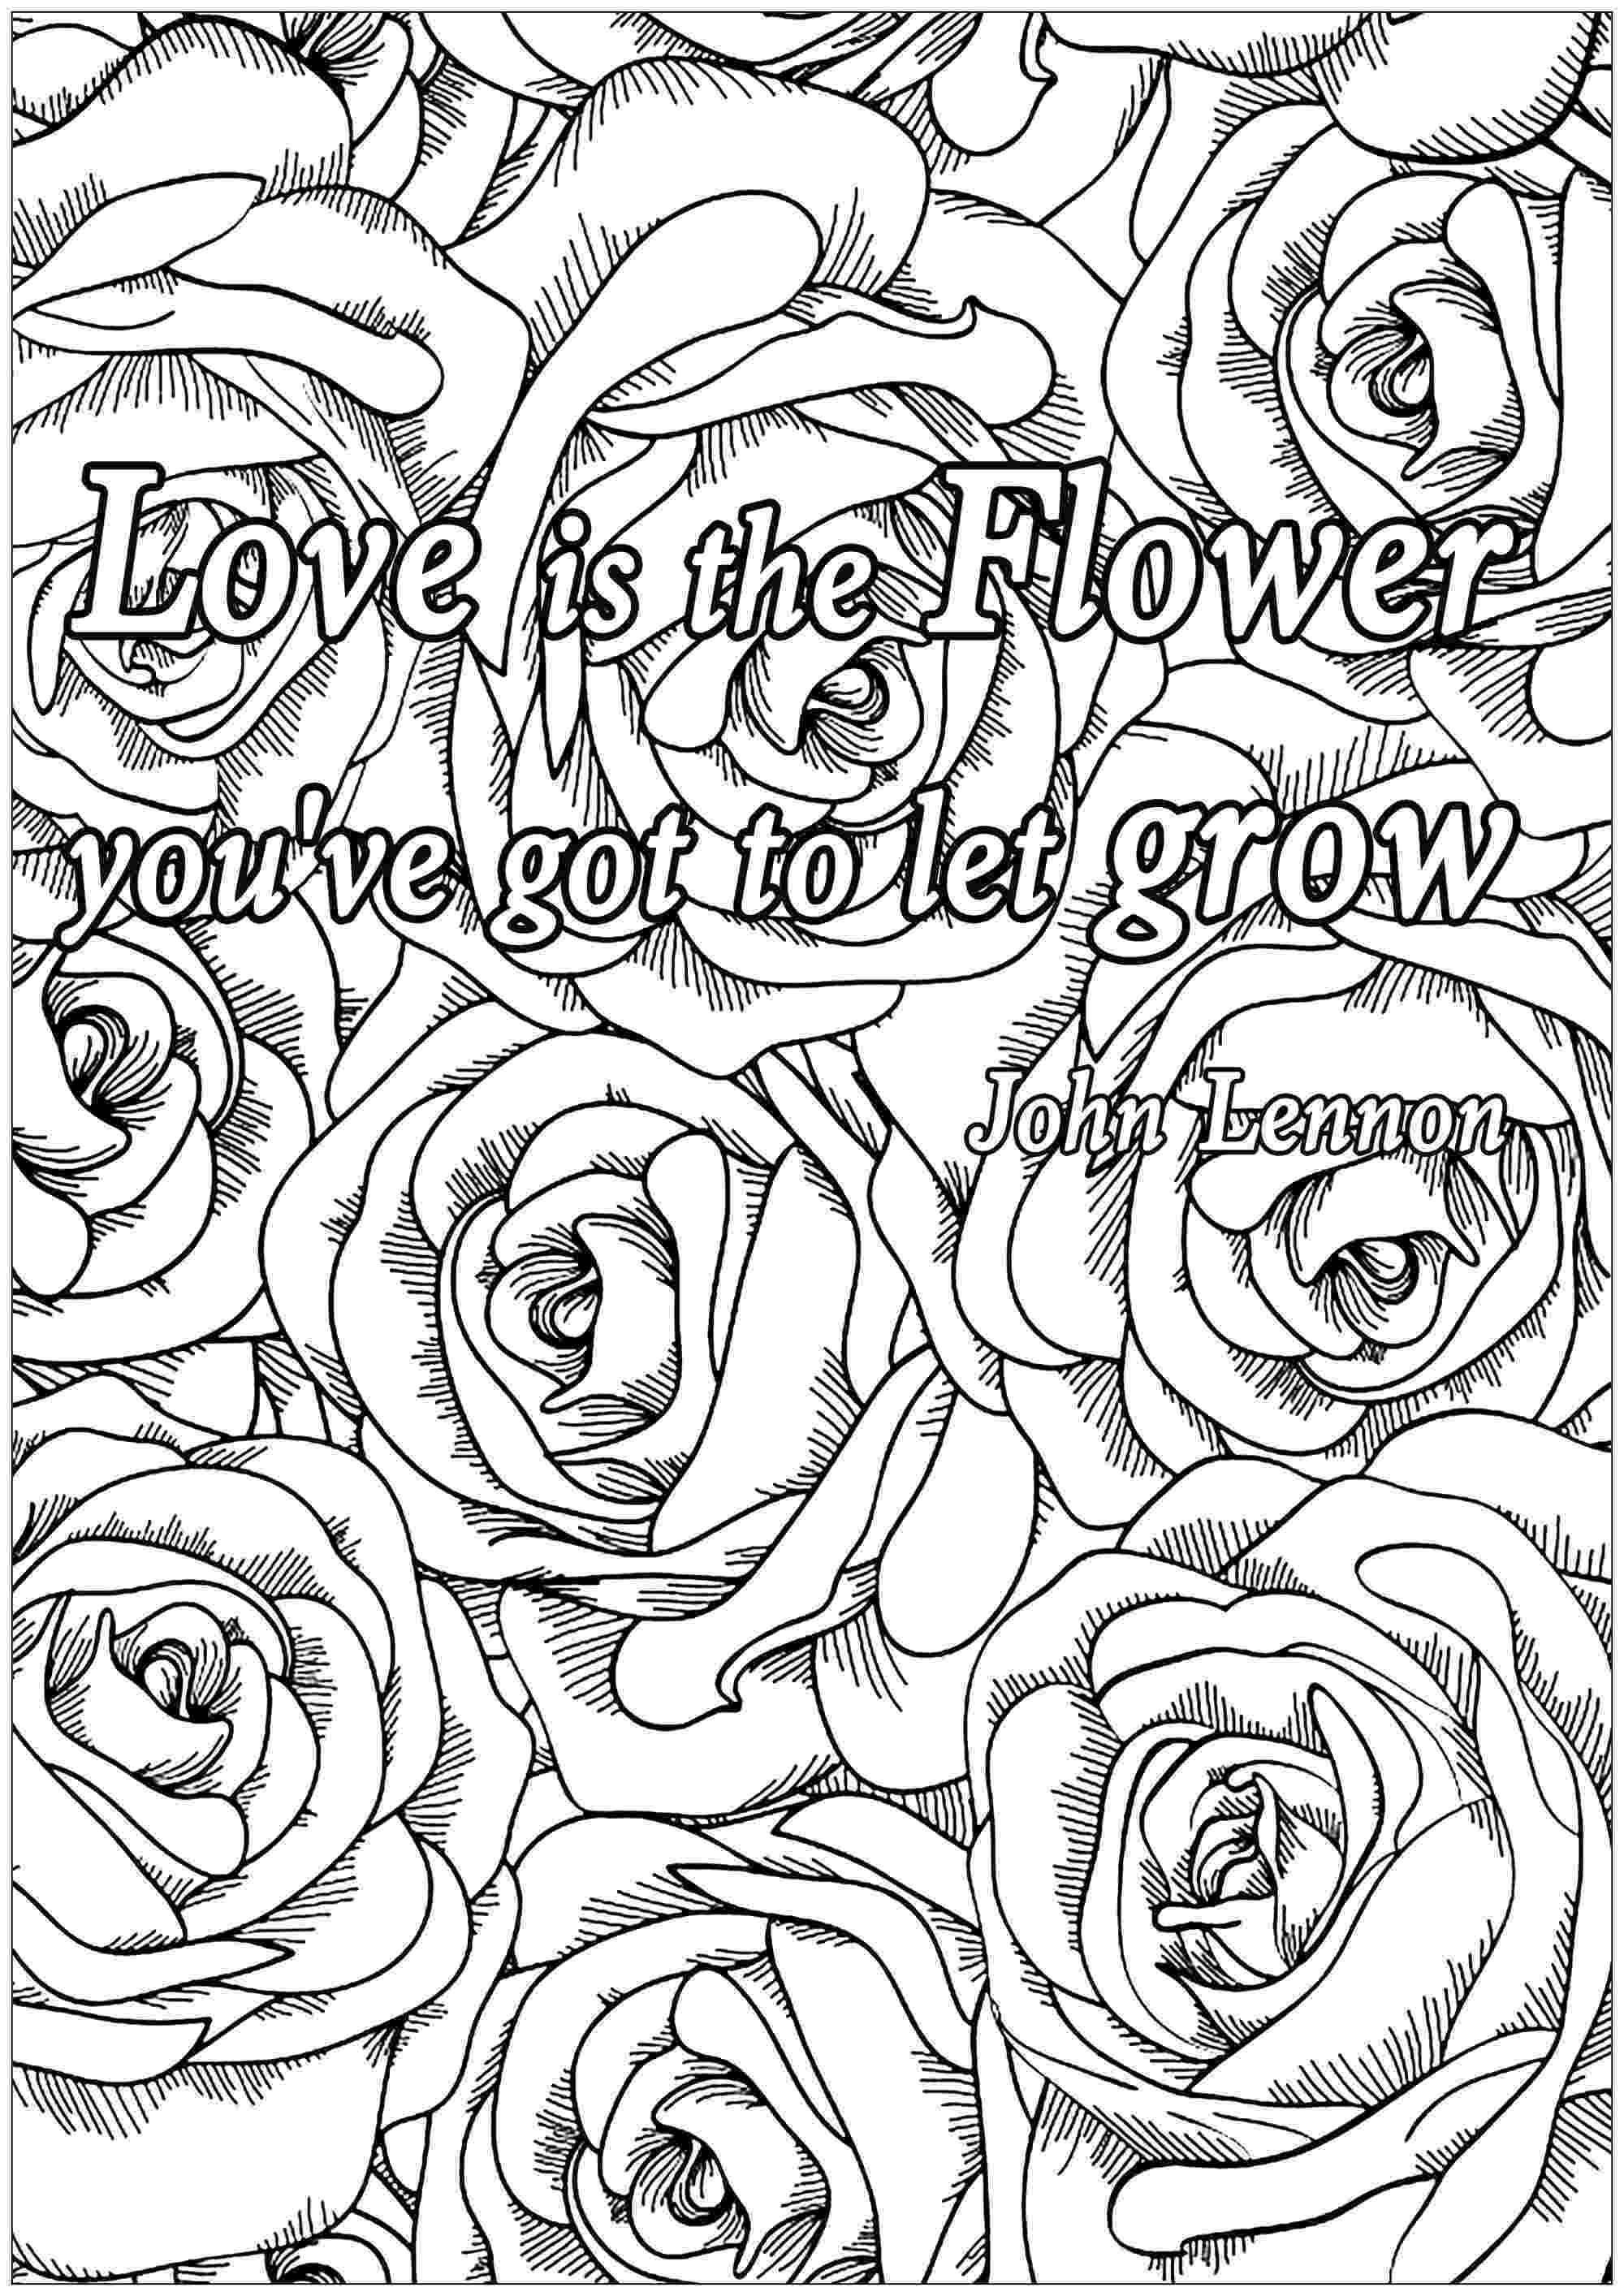 colouring pages for adults with quotes love is the flower quotes adult coloring pages pages colouring quotes with adults for